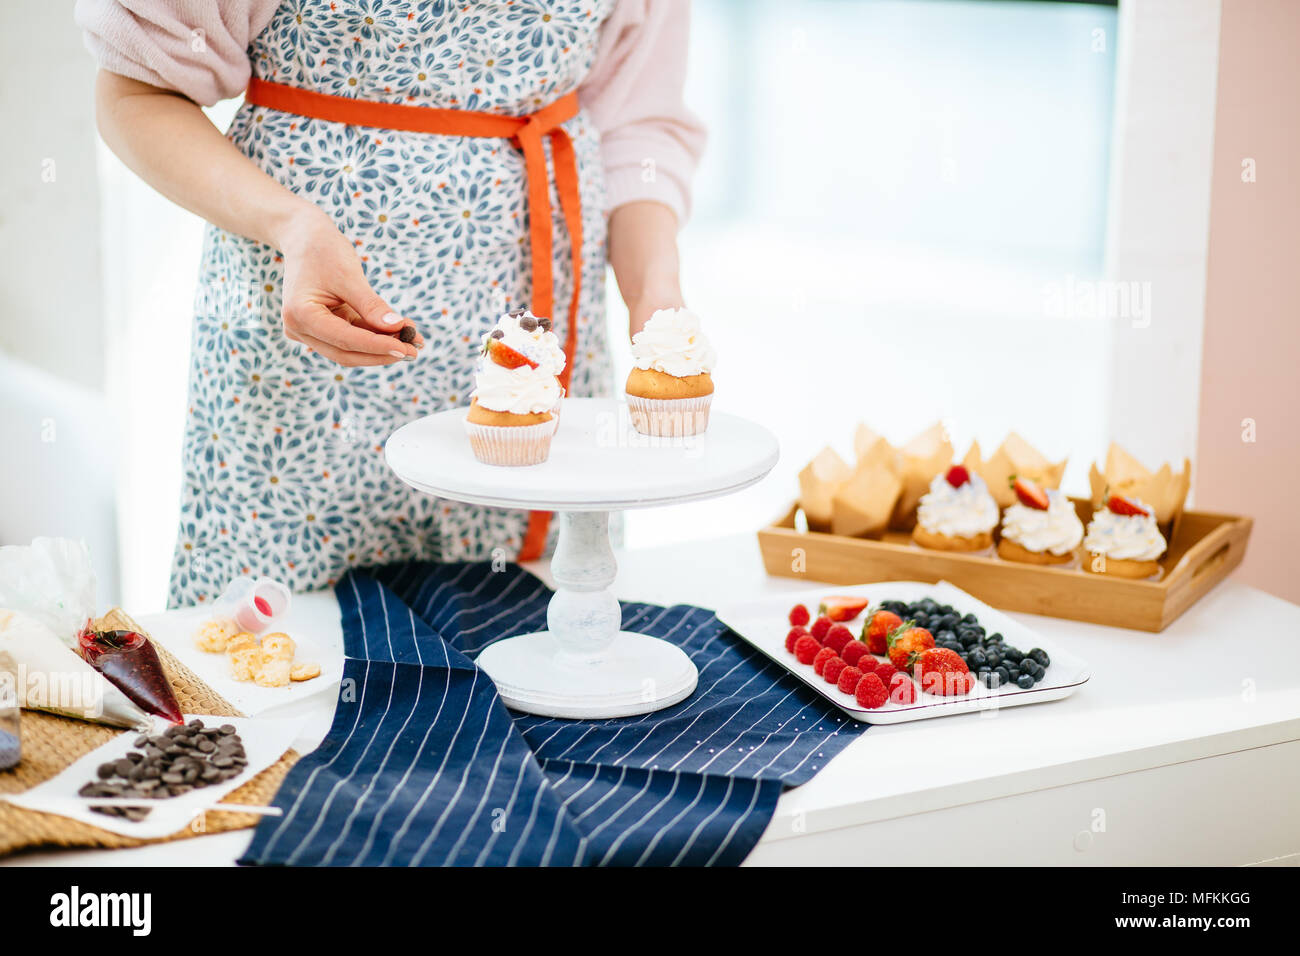 Female baker decorating creamy cupcakes with chocolate topping, a lot of cupcakes lying on wooden tray - Stock Image